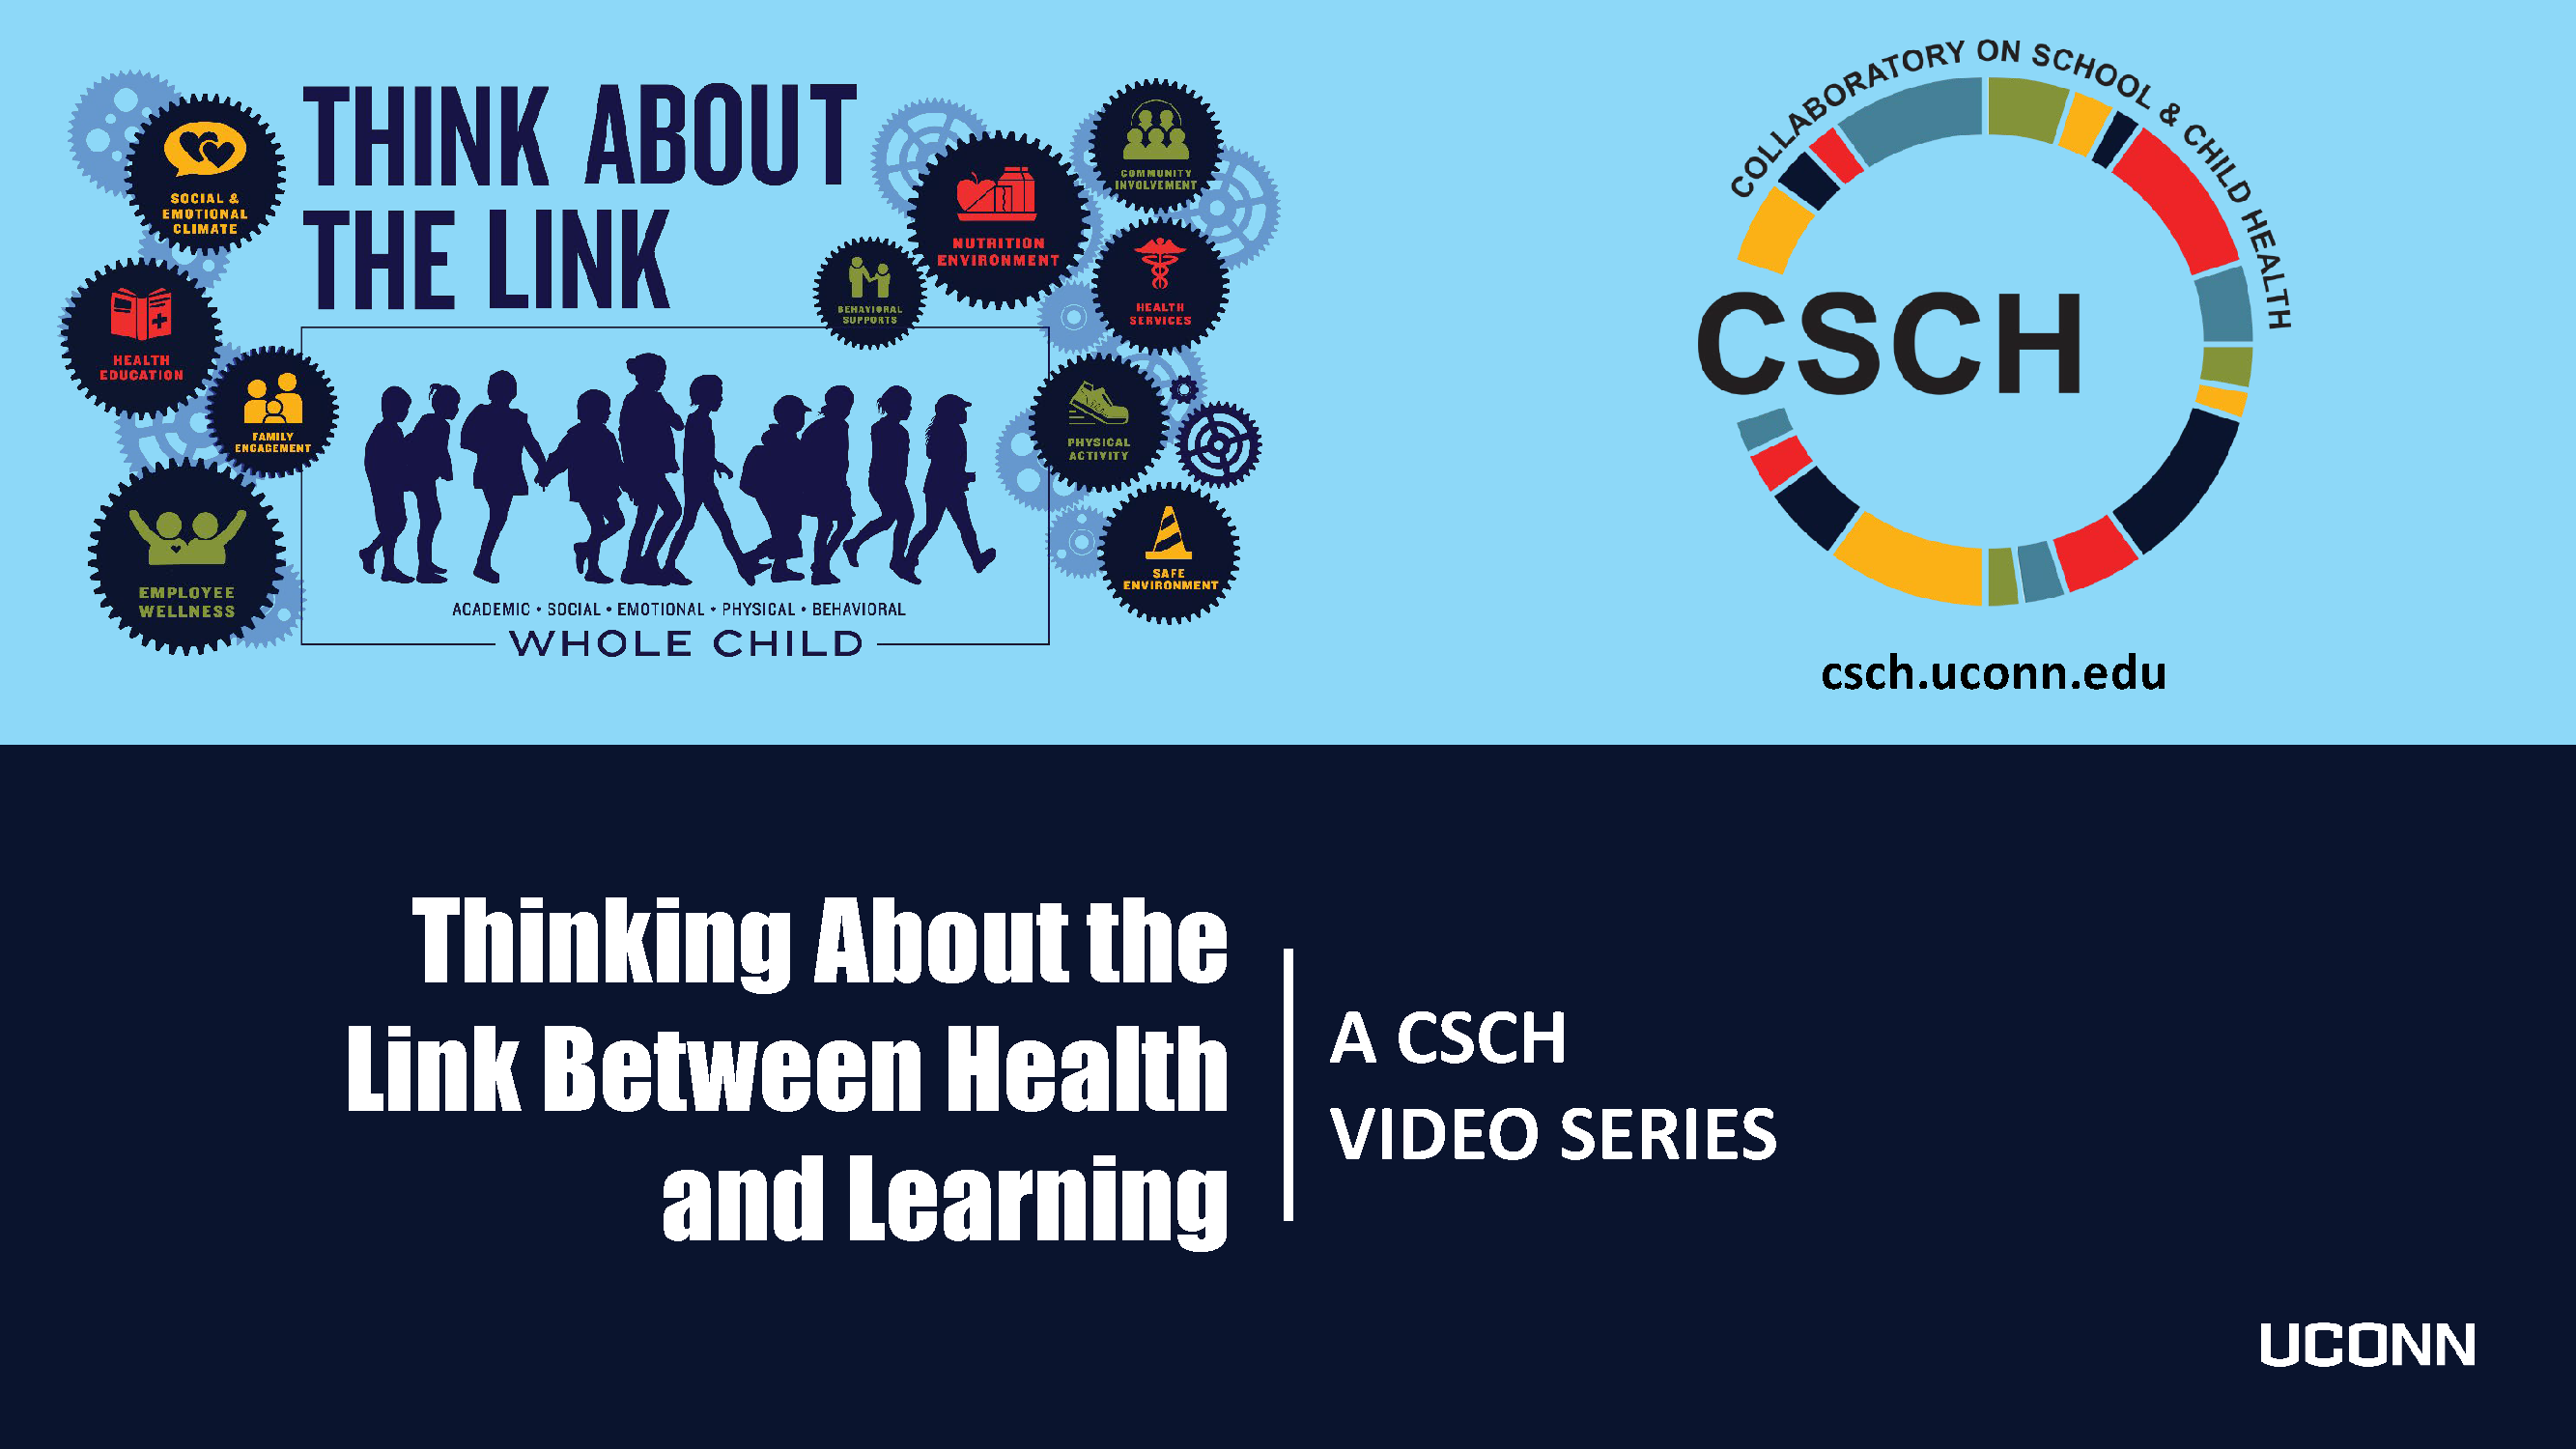 Thinking About the Link Between Health and Learning Video